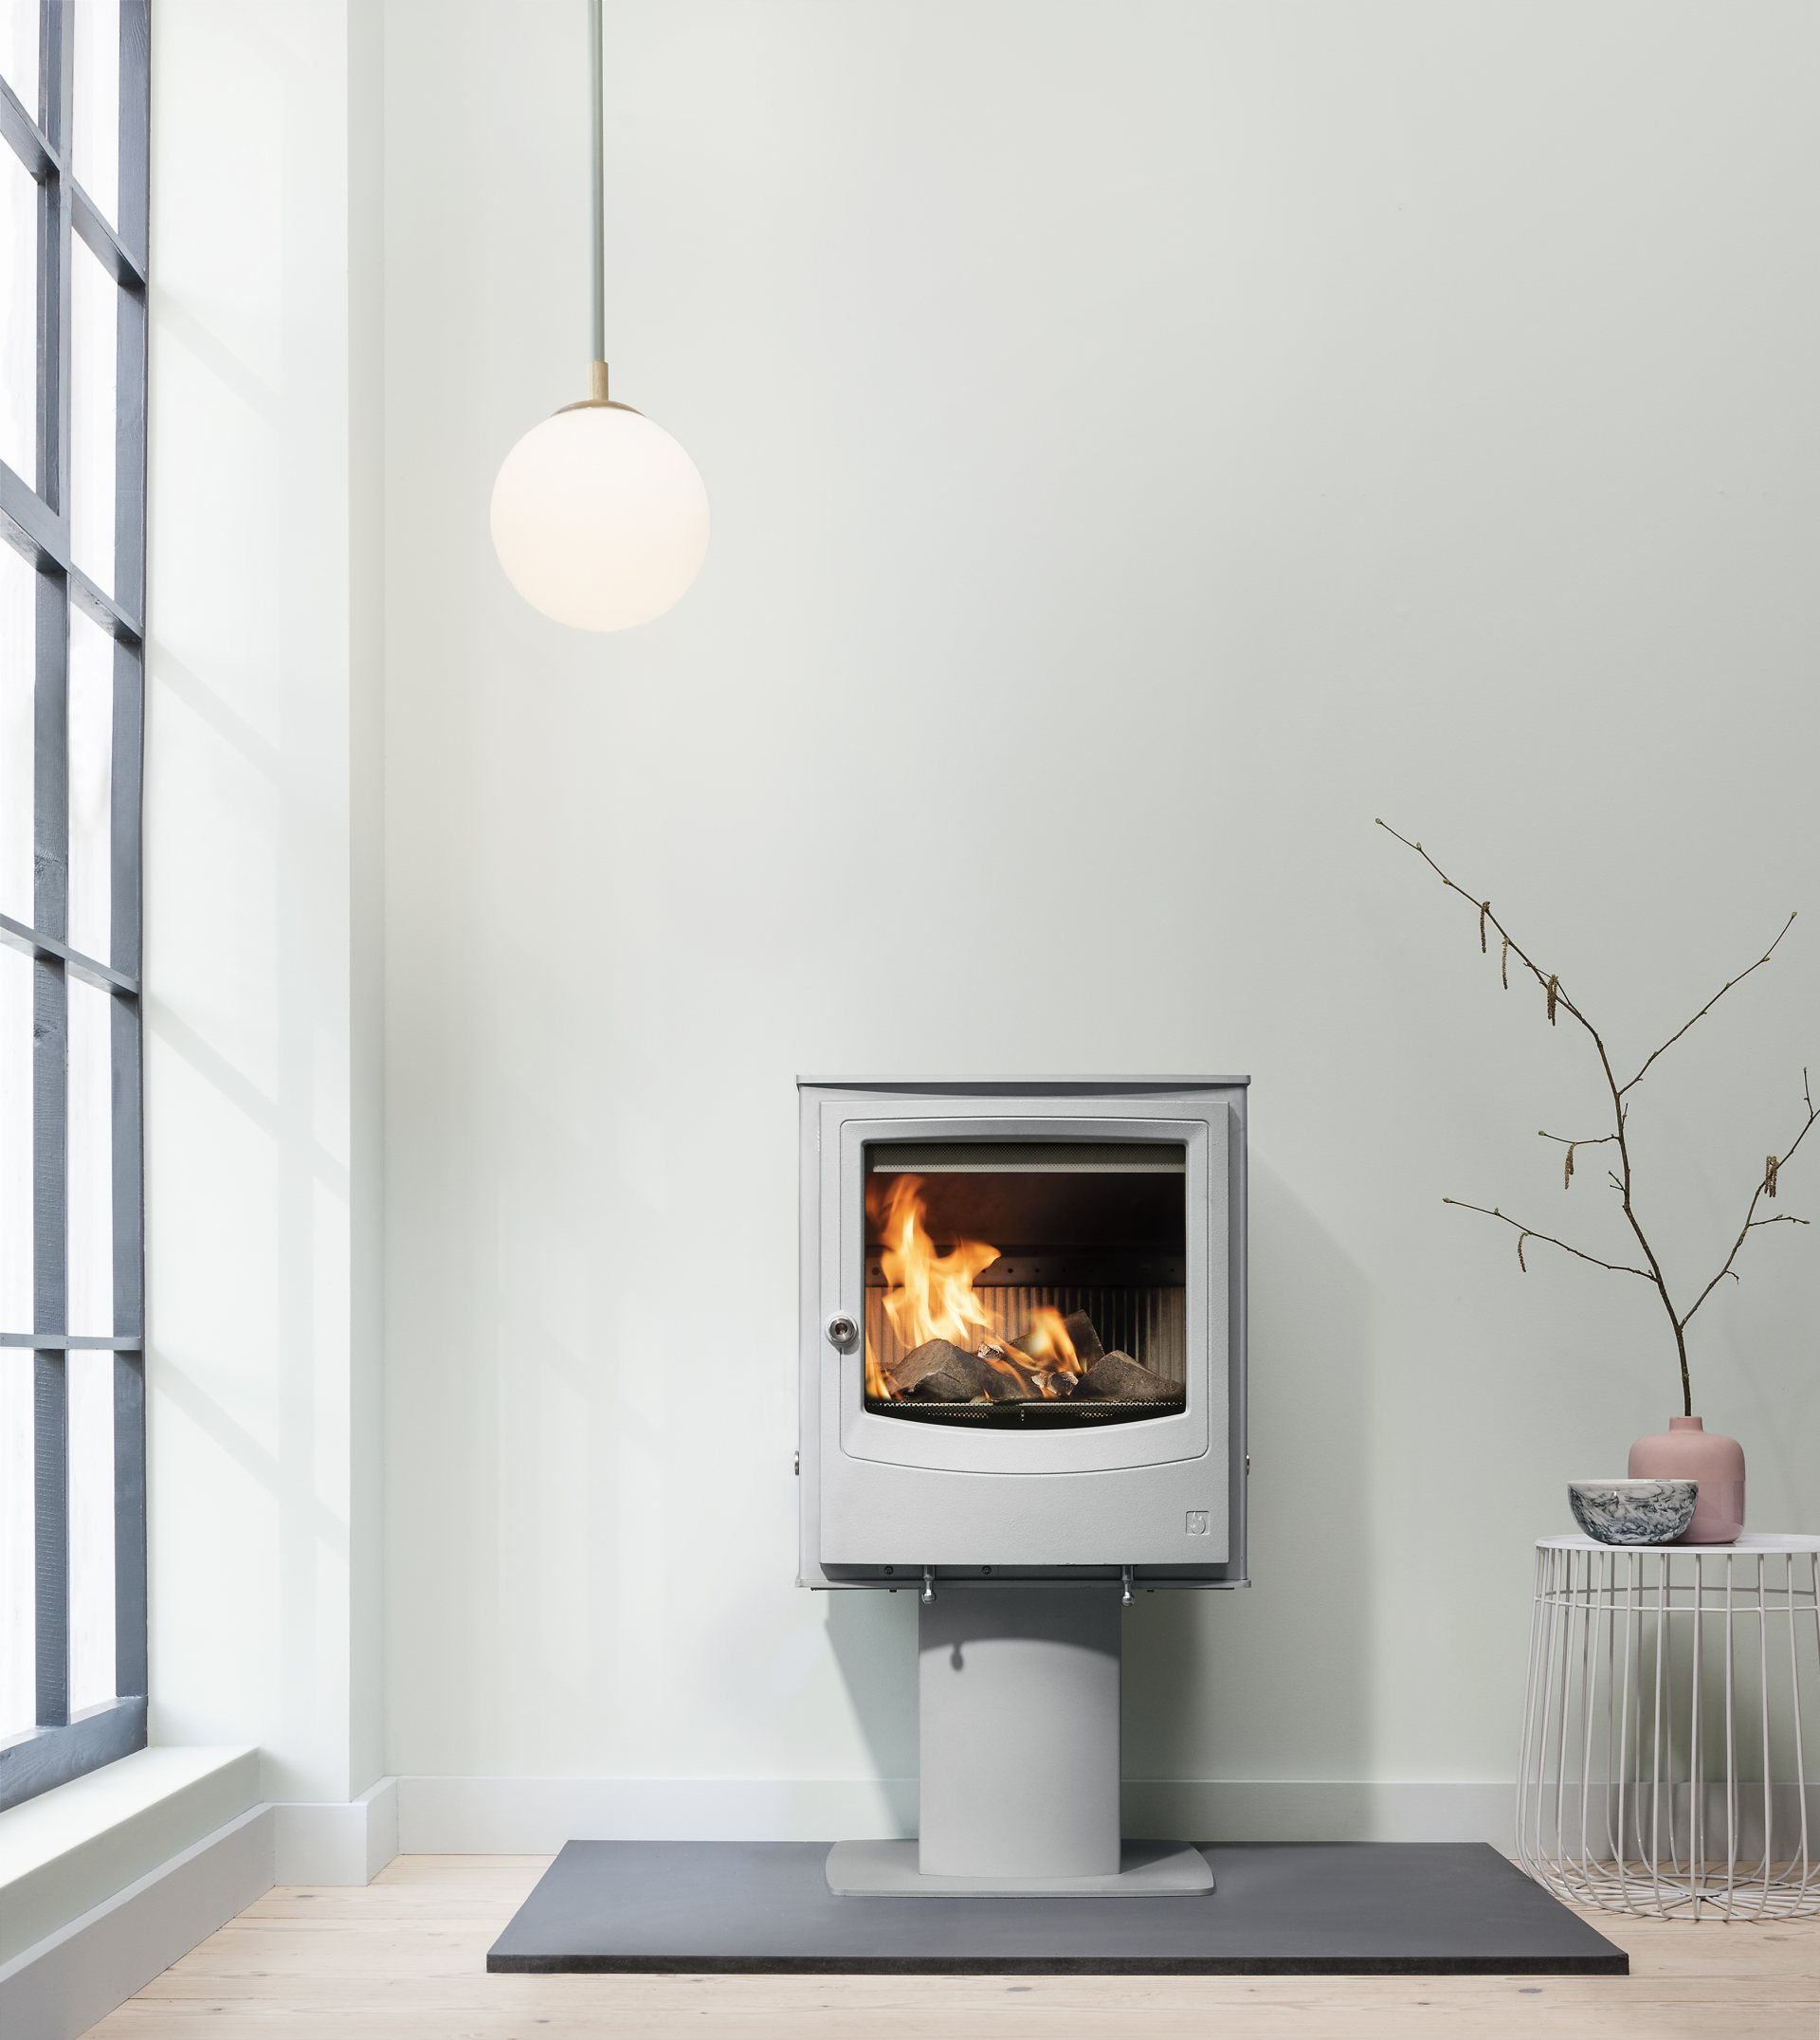 Farringdon Eco freestanding wood burning stove in Mist grey with colour-matched optional pedestal